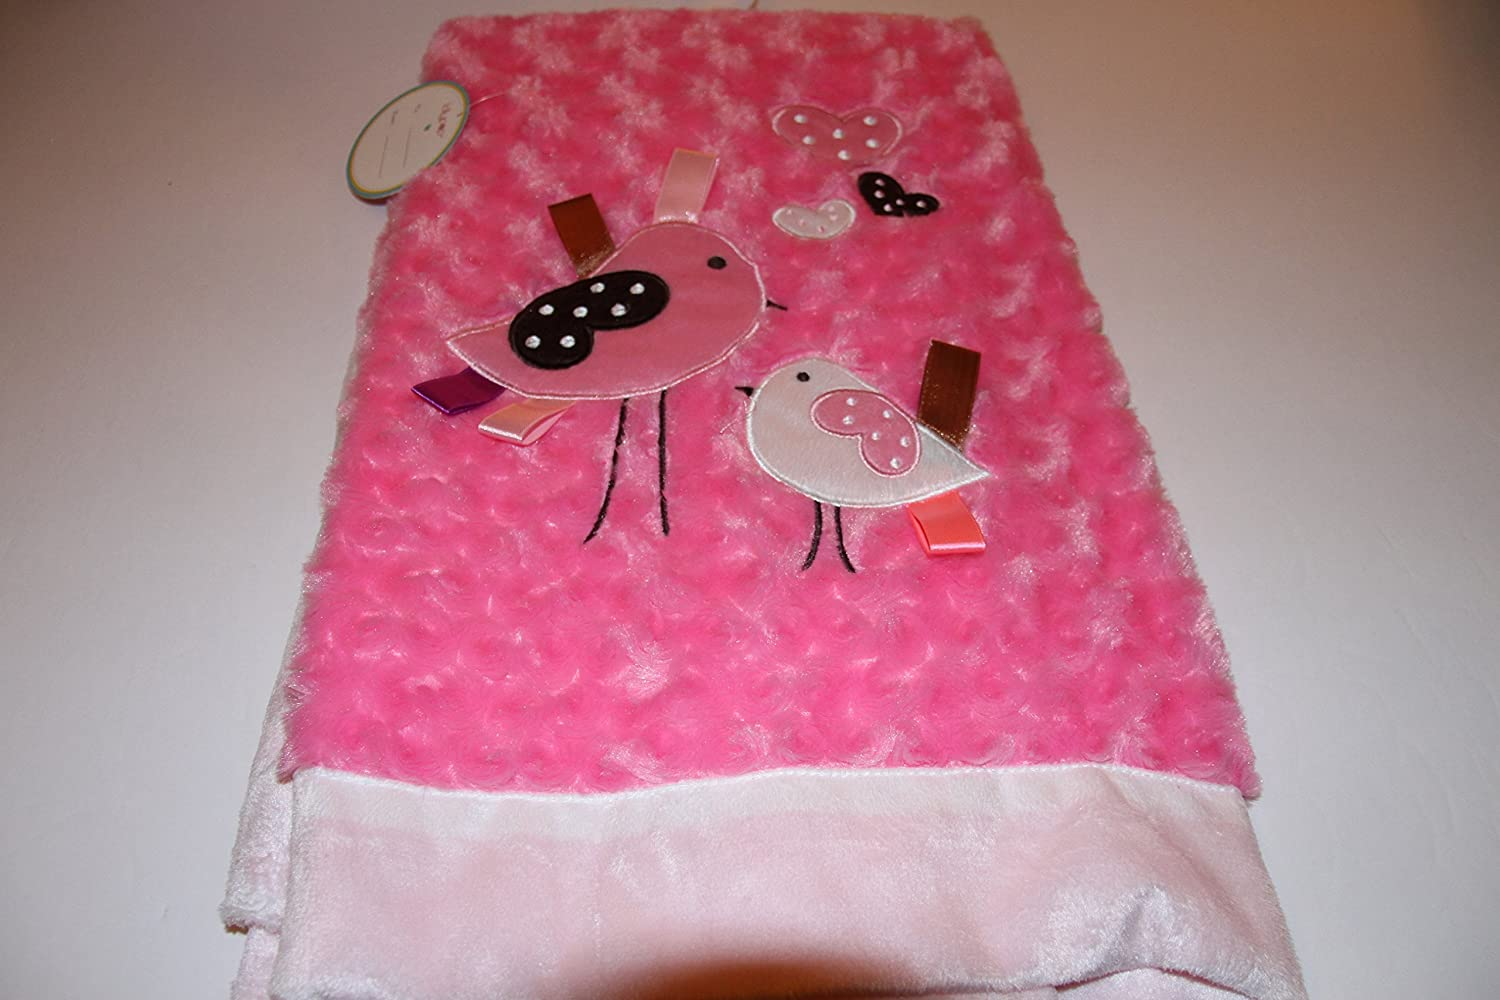 Lollypop Soft & Cozy Hot Pink Rosette Baby Blanket with Bird Applique 30x40 Lollipop